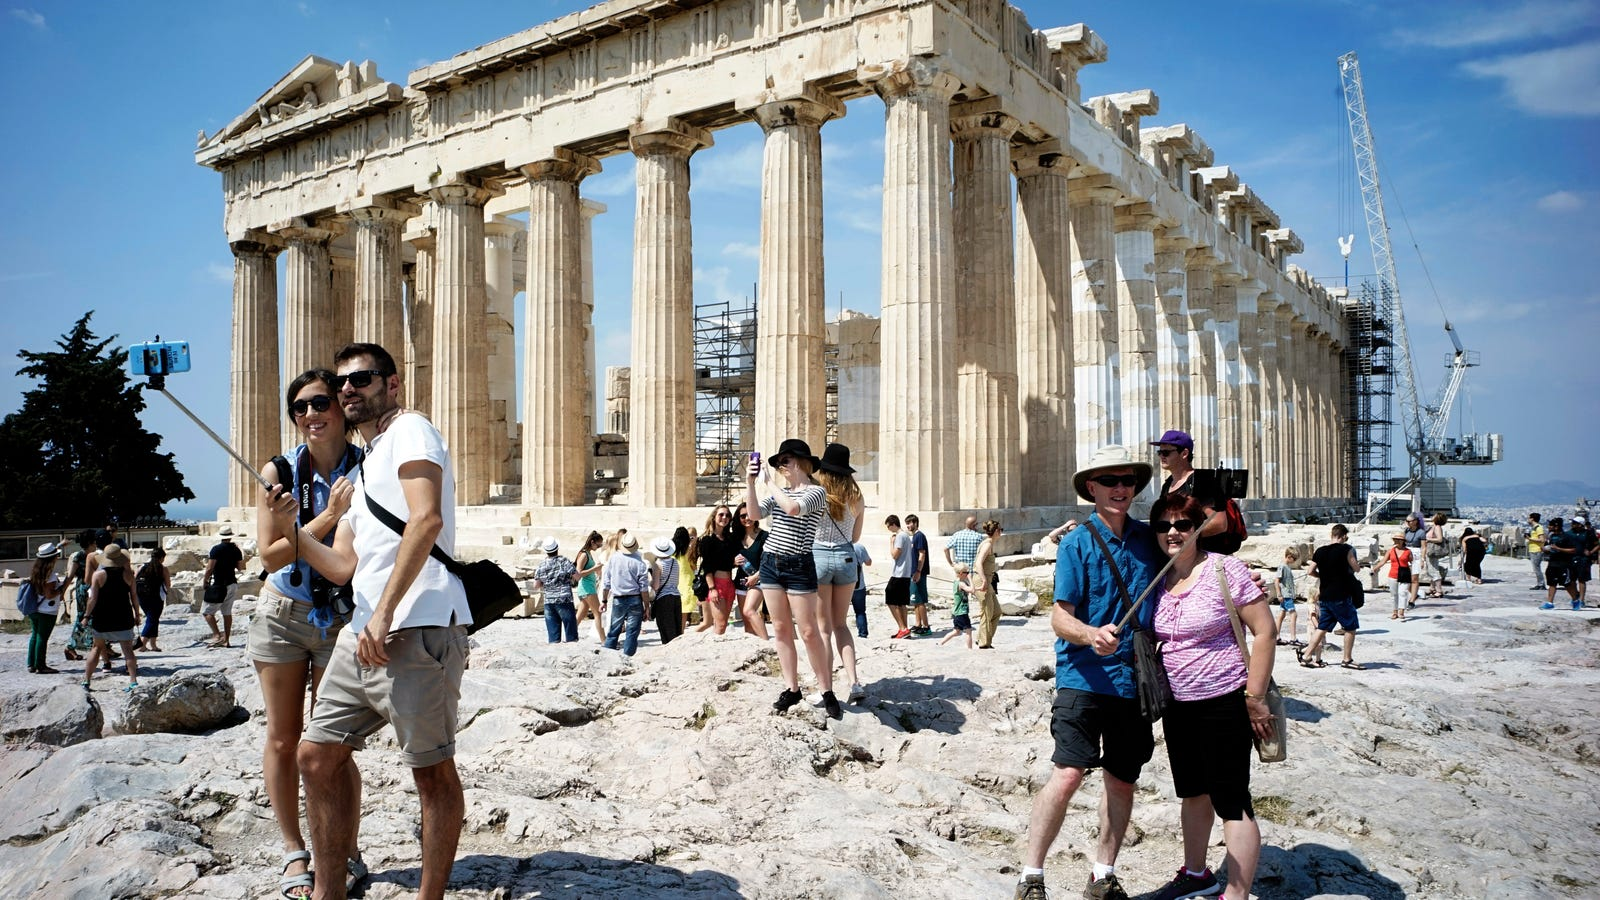 How to Avoid Annoying Crowds and Lines at Tourist Attractions